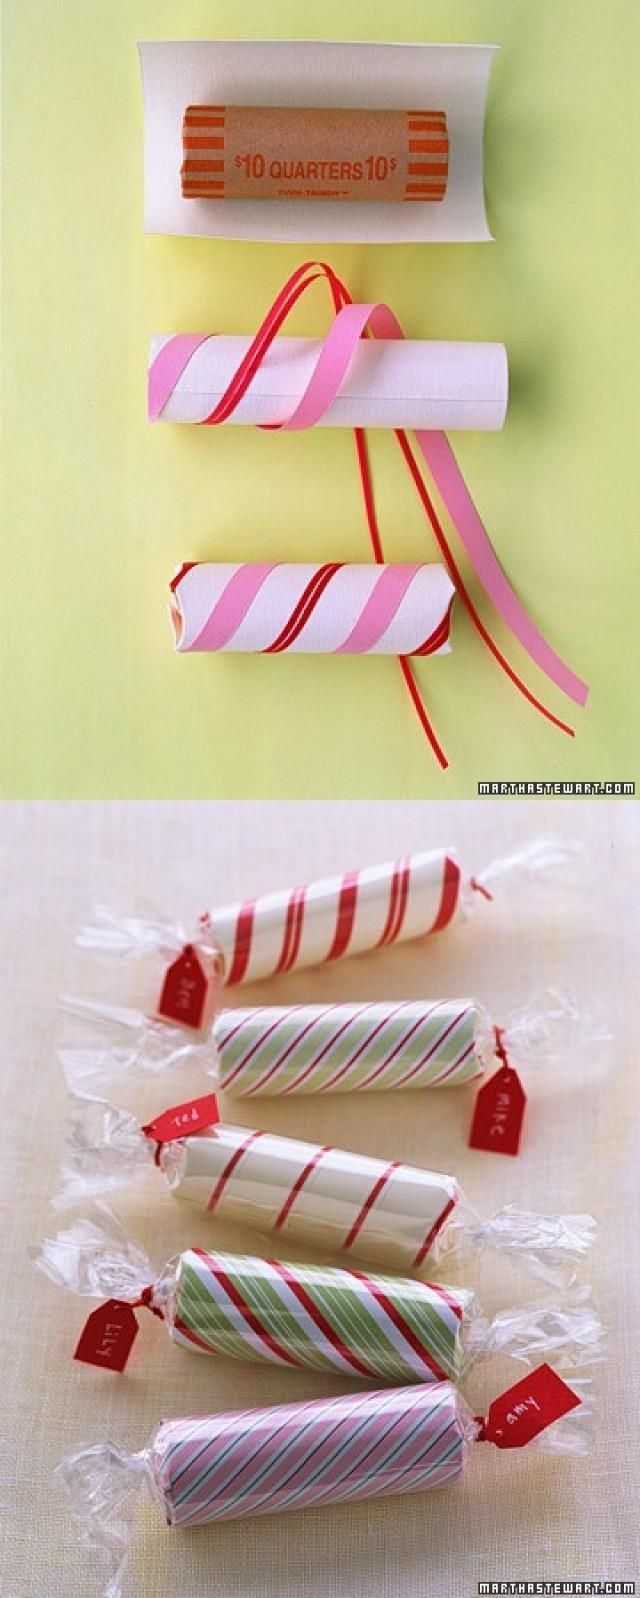 Roll of coins stocking stuffer...cute idea!!